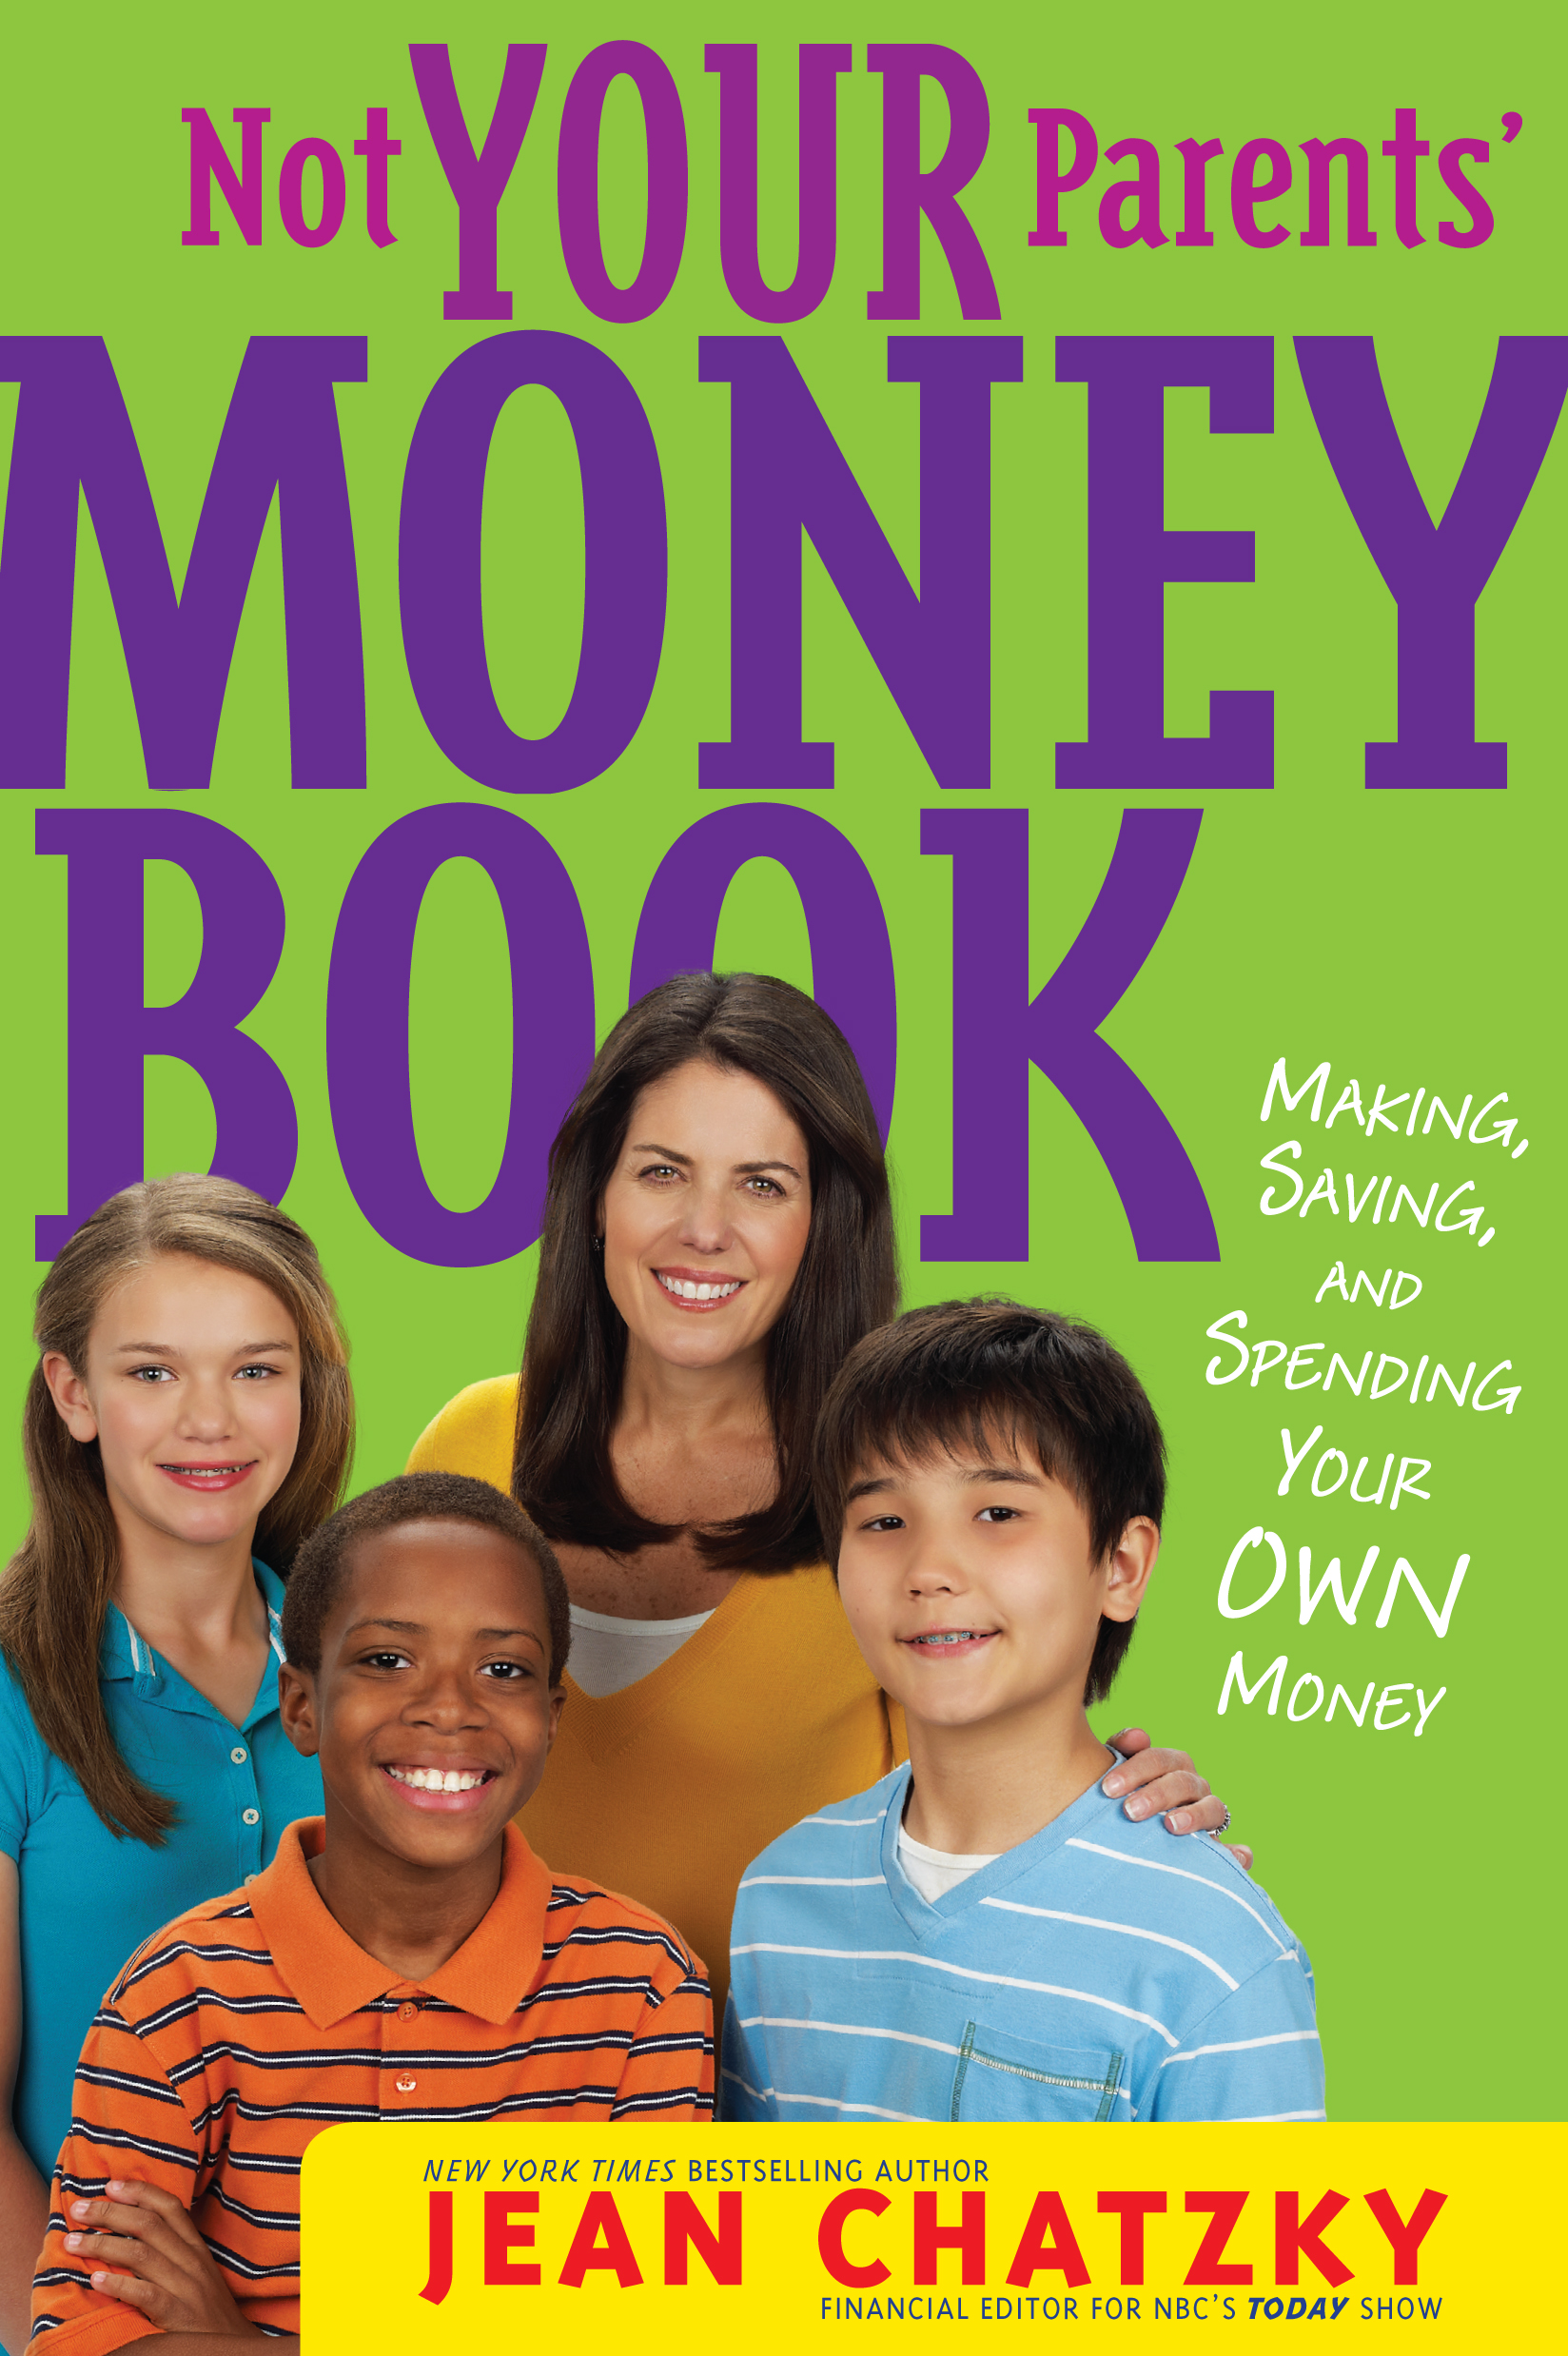 Making, Saving, And Spending Your Own Money